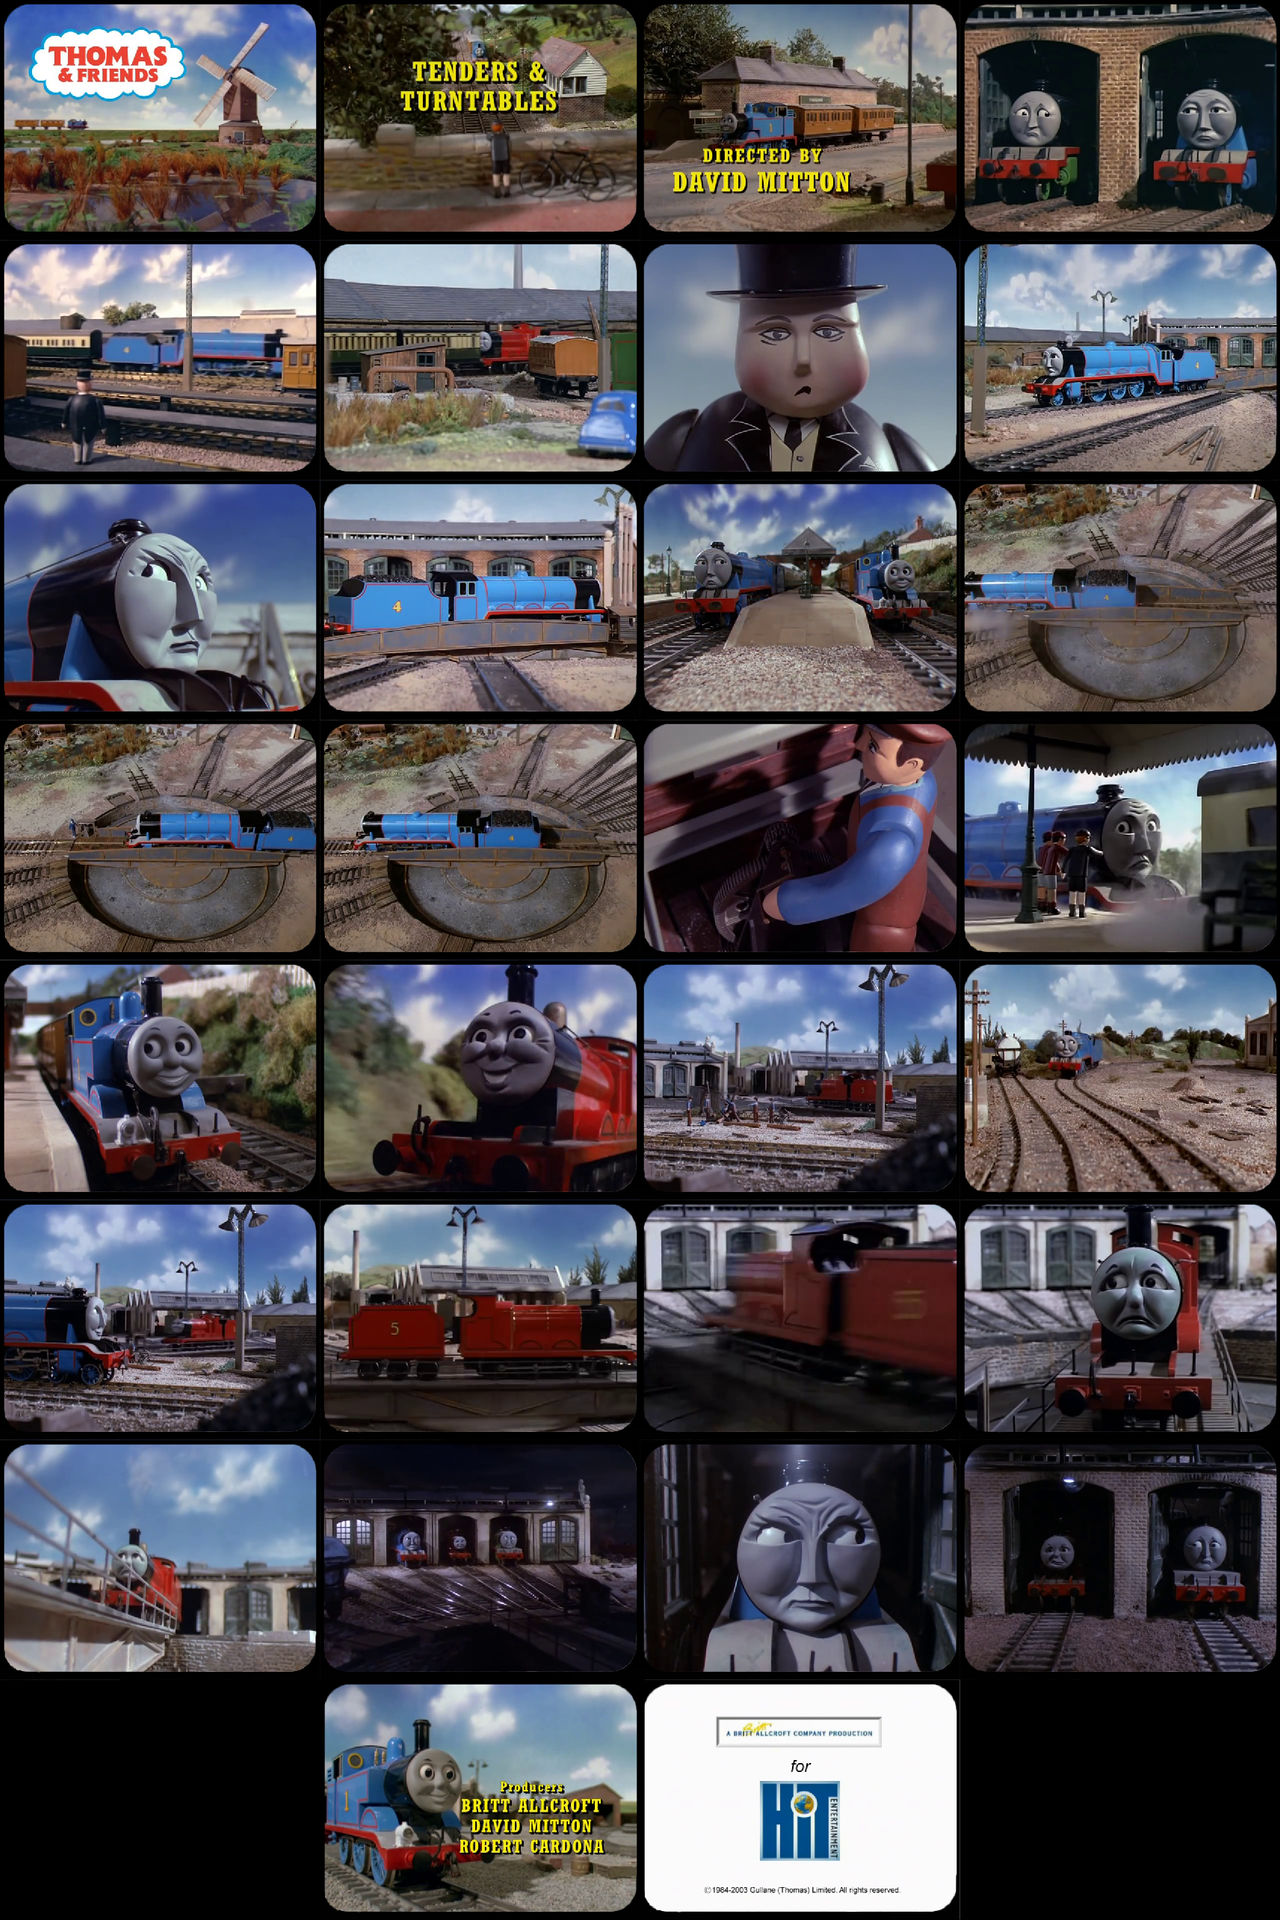 Thomas and Friends Episode 15 Tele-Snaps